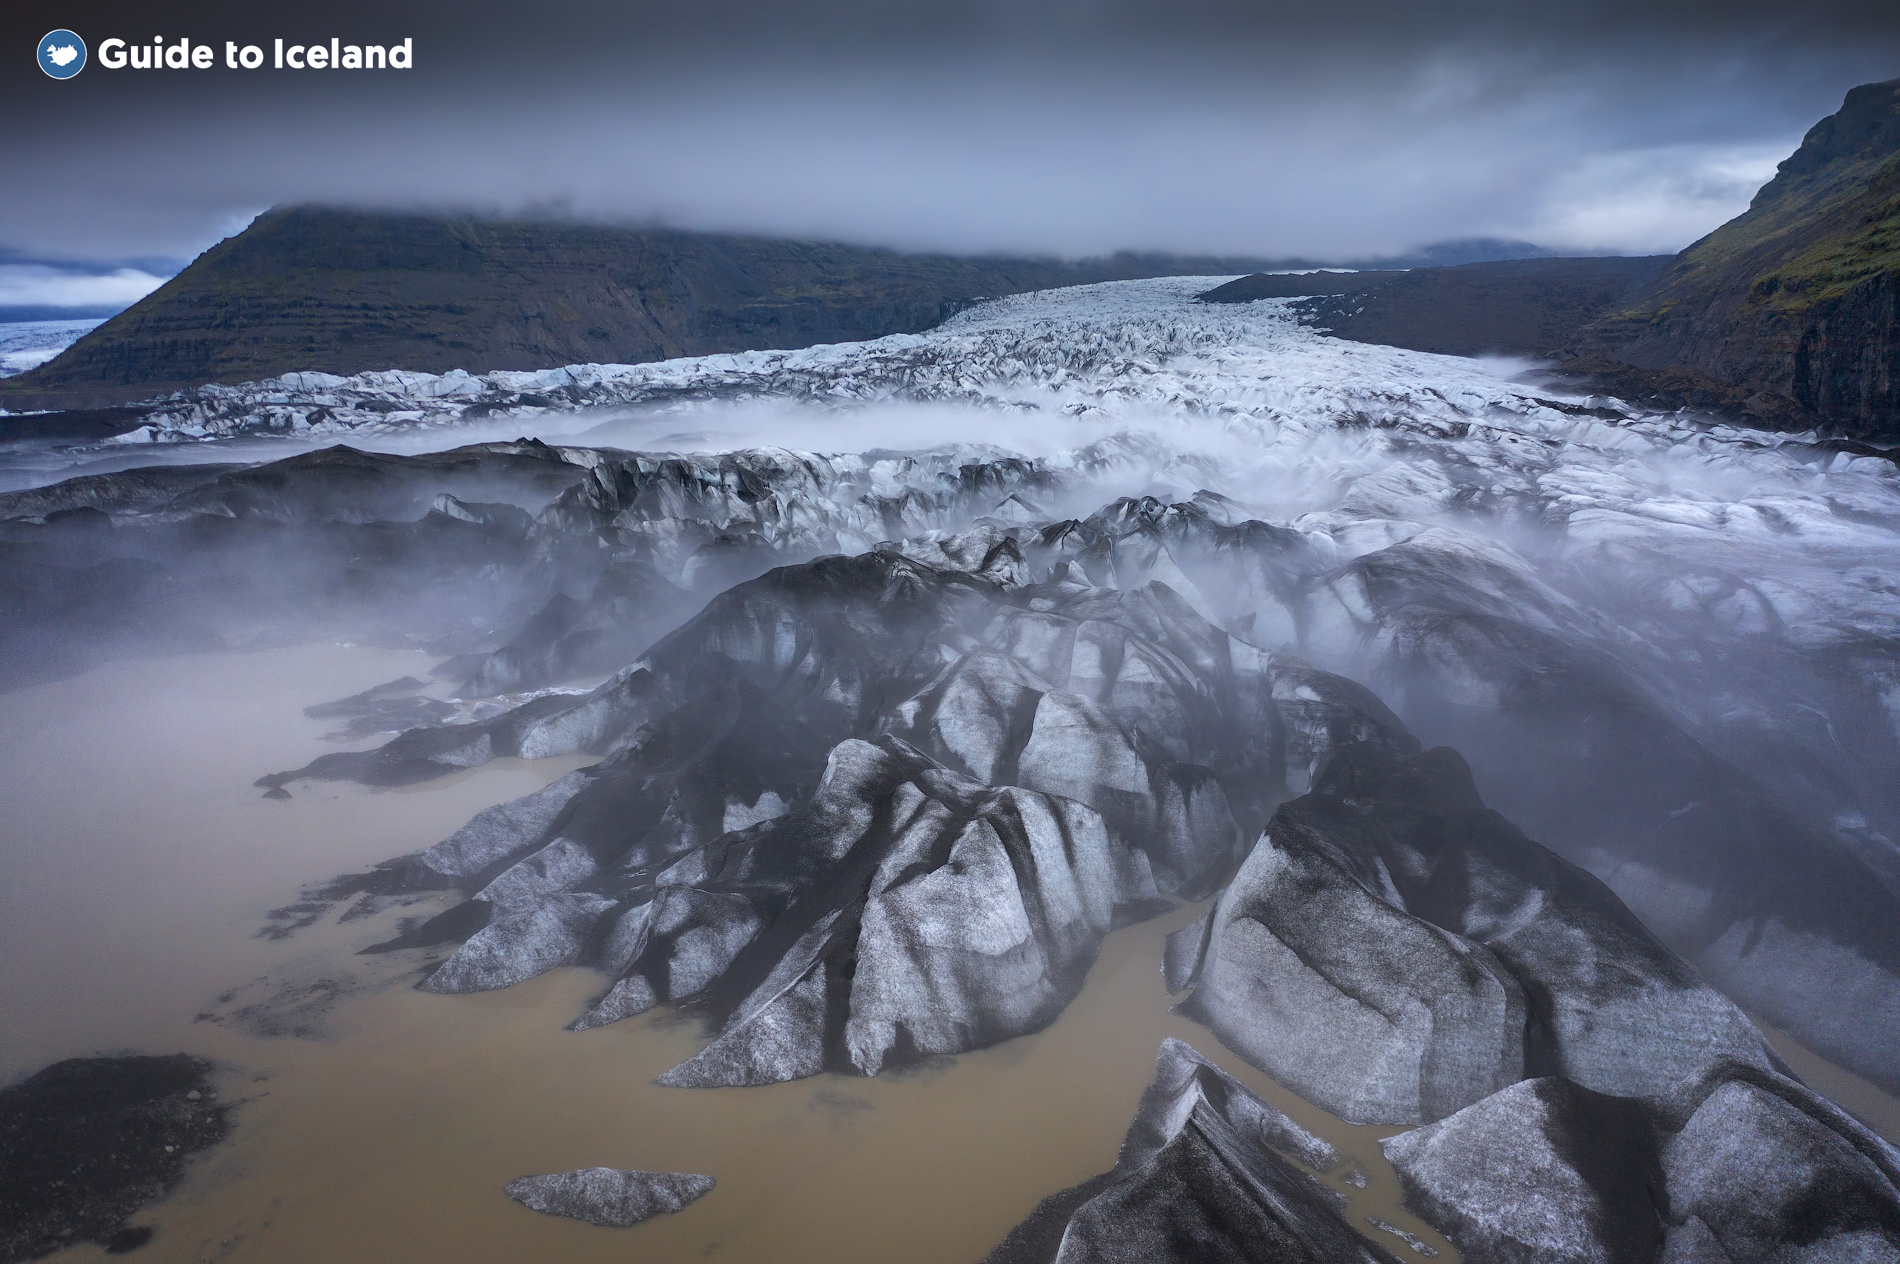 An image of an Icelandic Glacier taken from above.